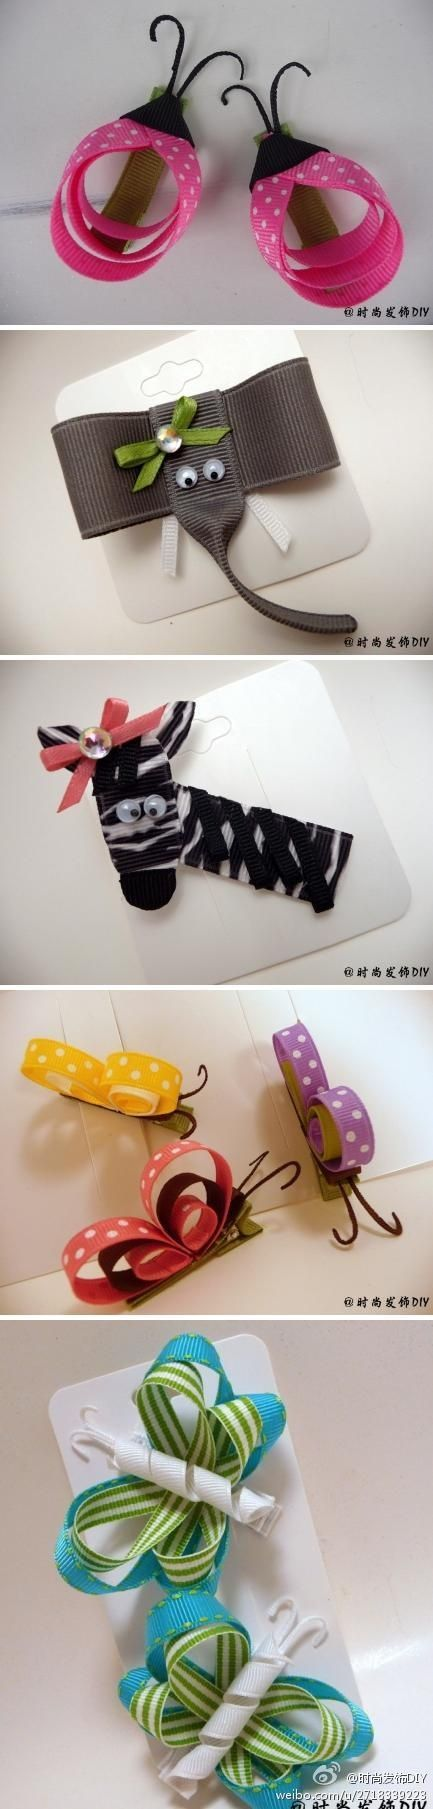 hair clips @ Do It Yourself Remodeling Ideas